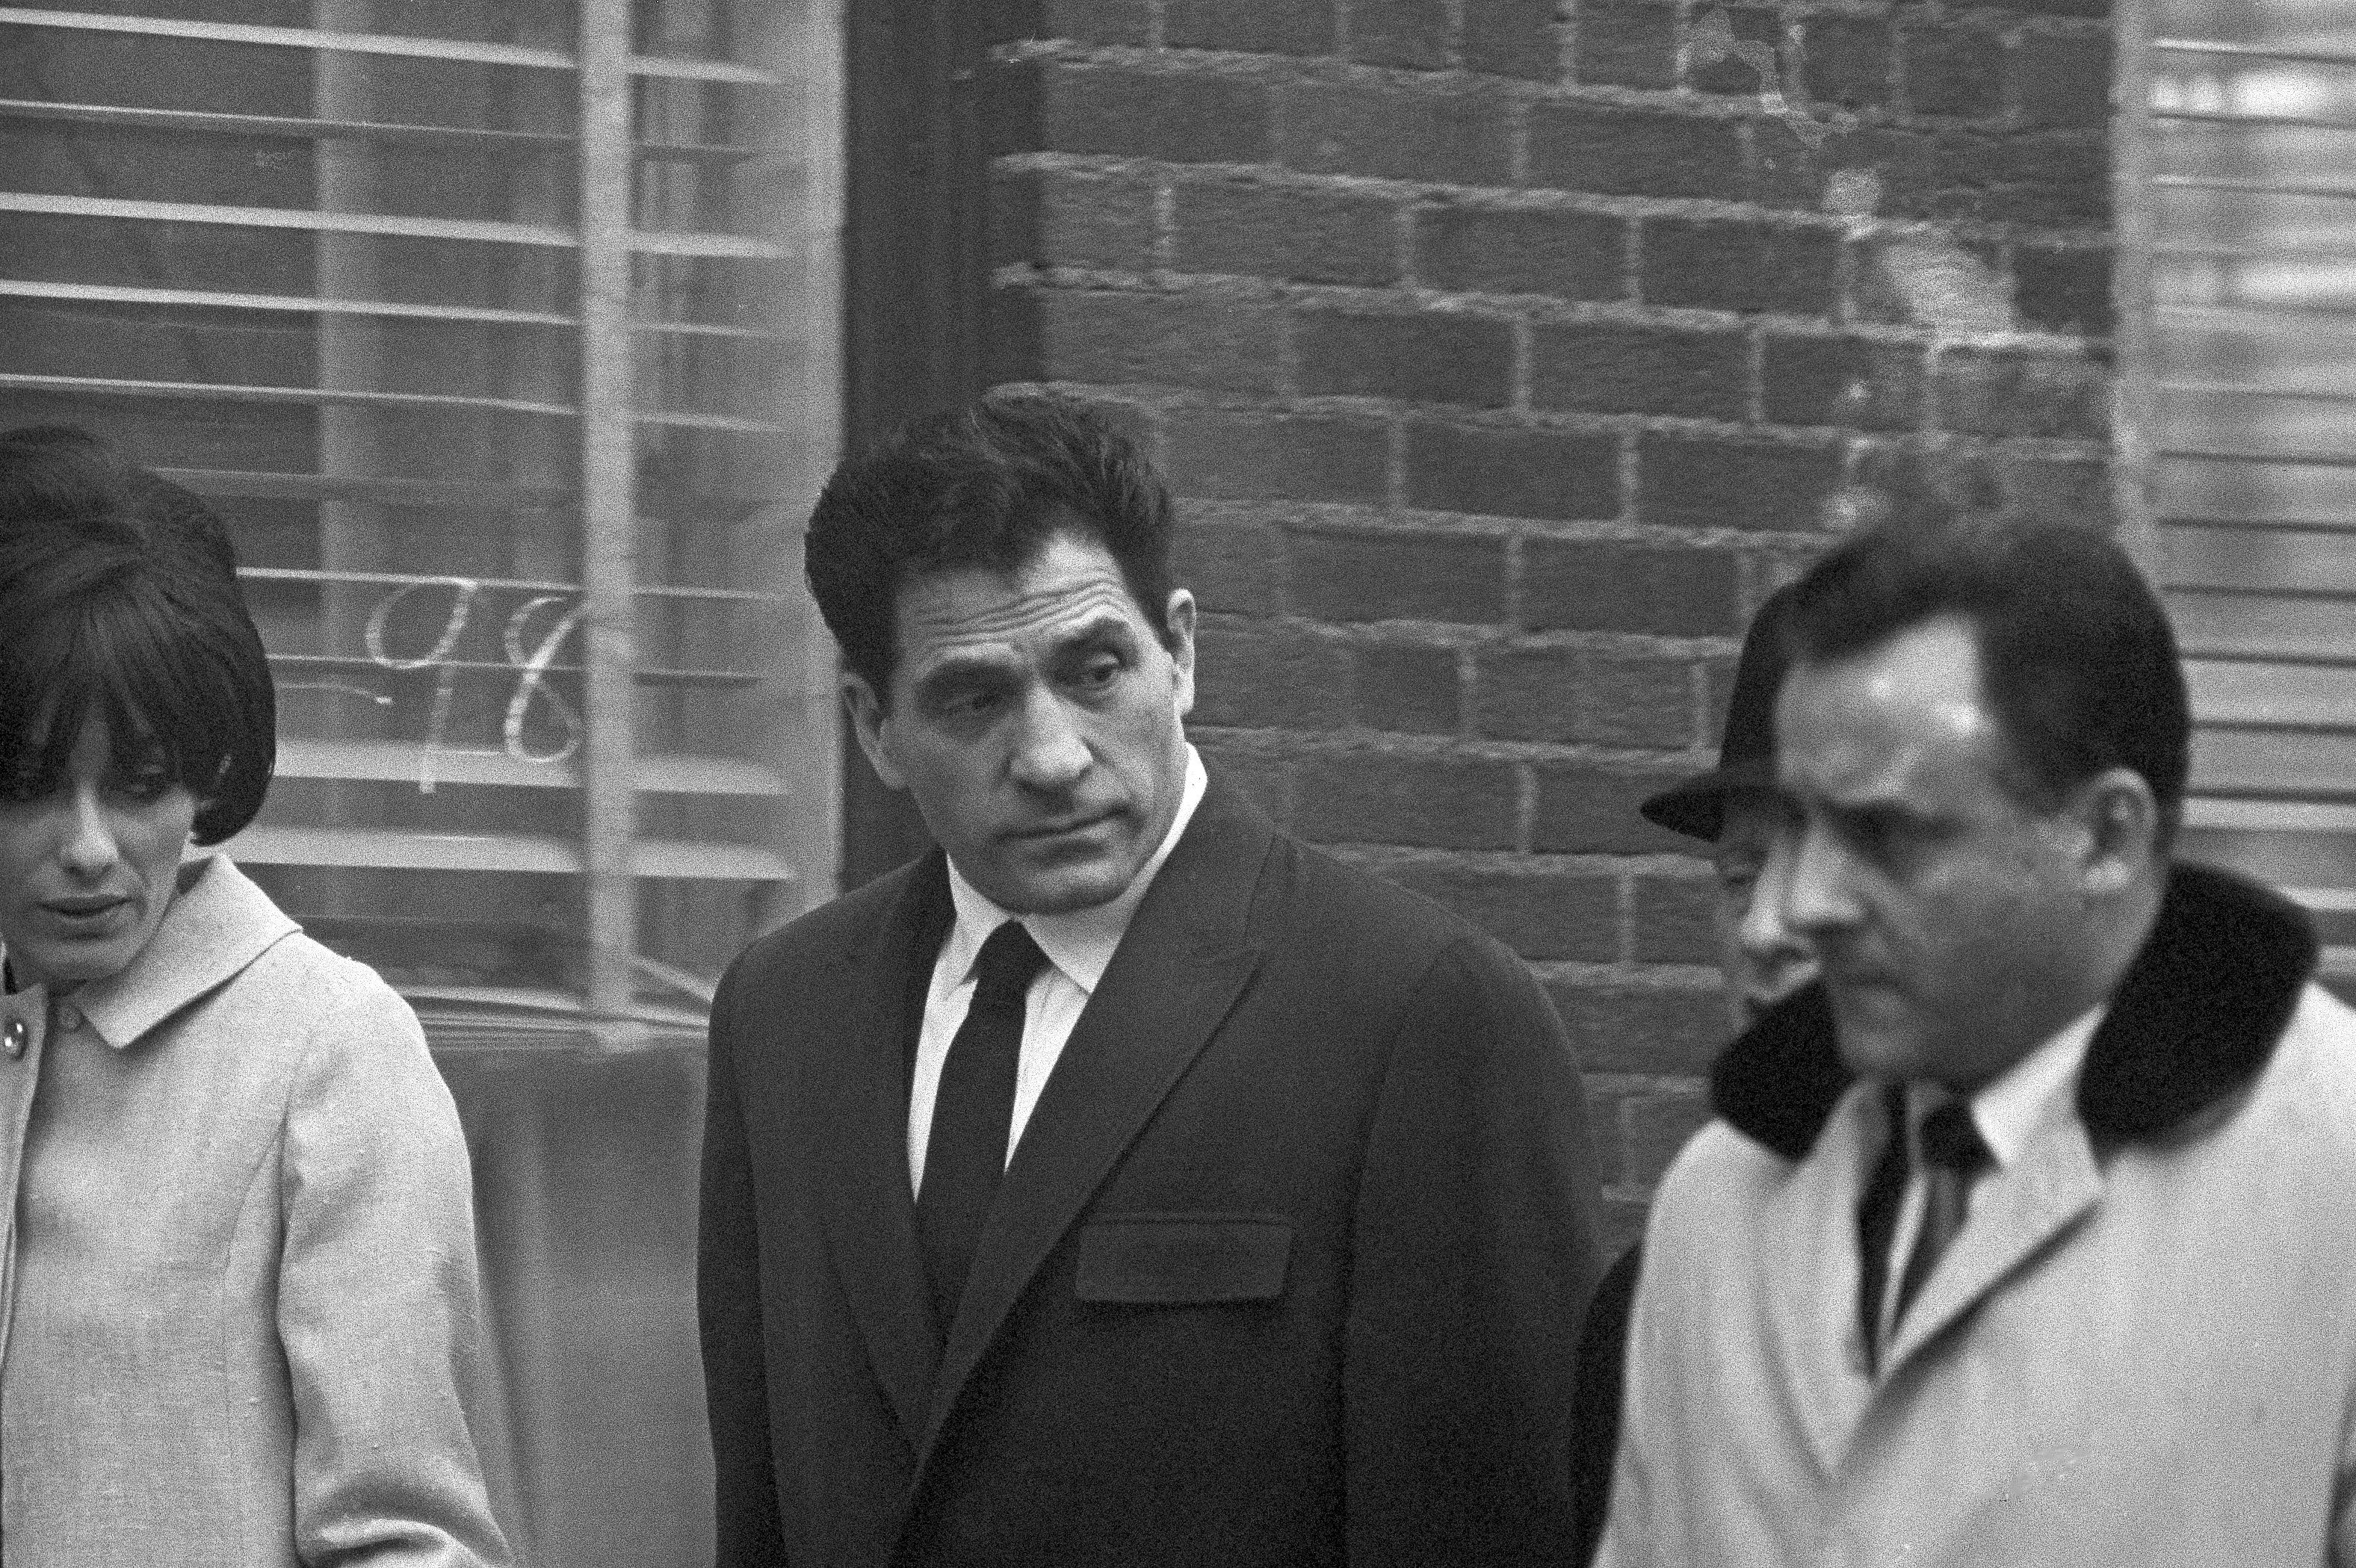 Reputed mobster John Franzese